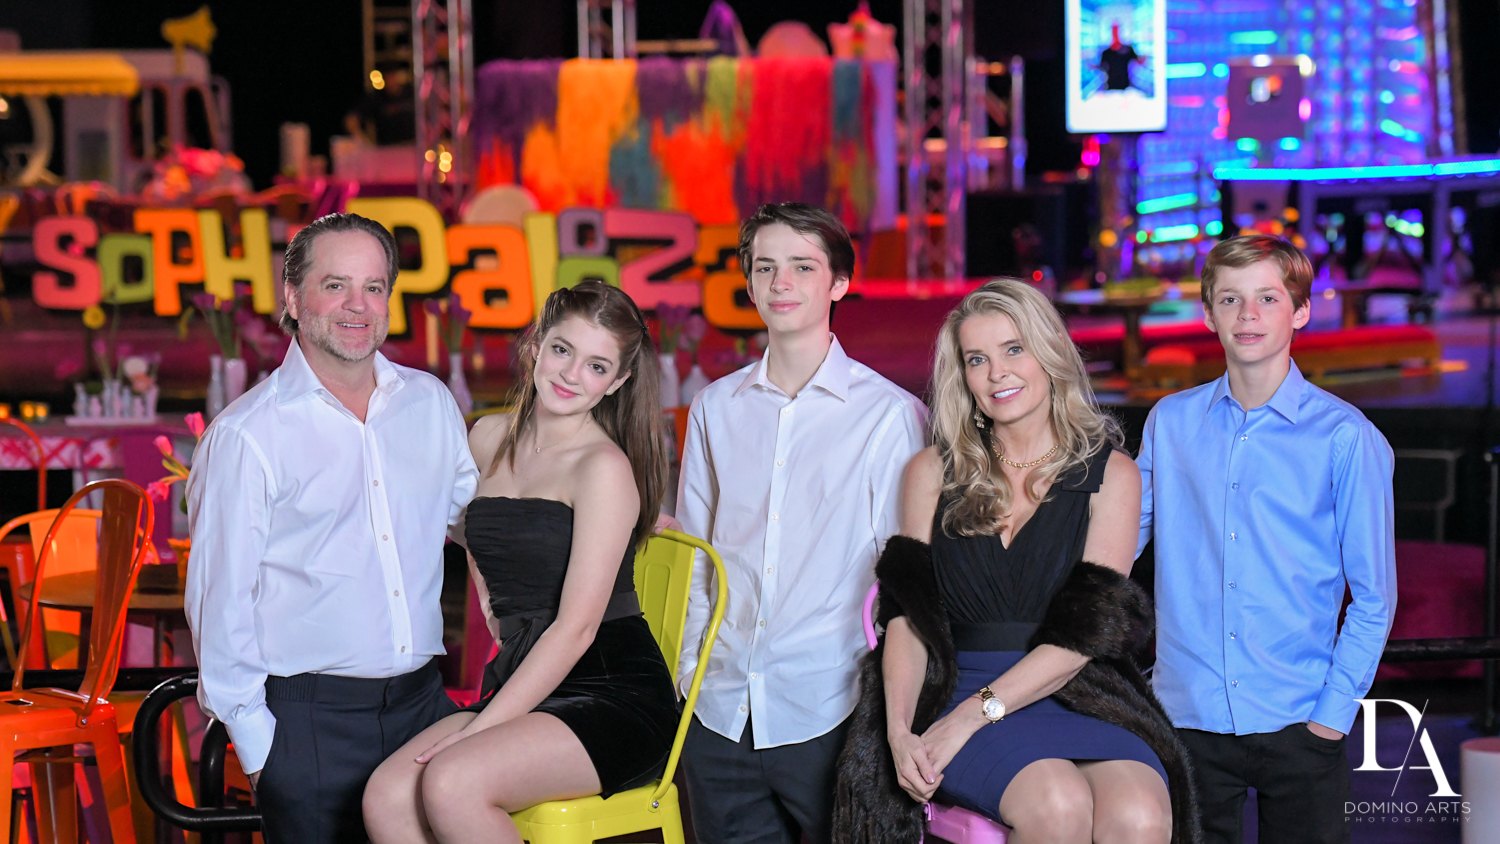 family photo at Music Festival Bat Mitzvah at The Fillmore Miami Beach by Domino Arts Photography